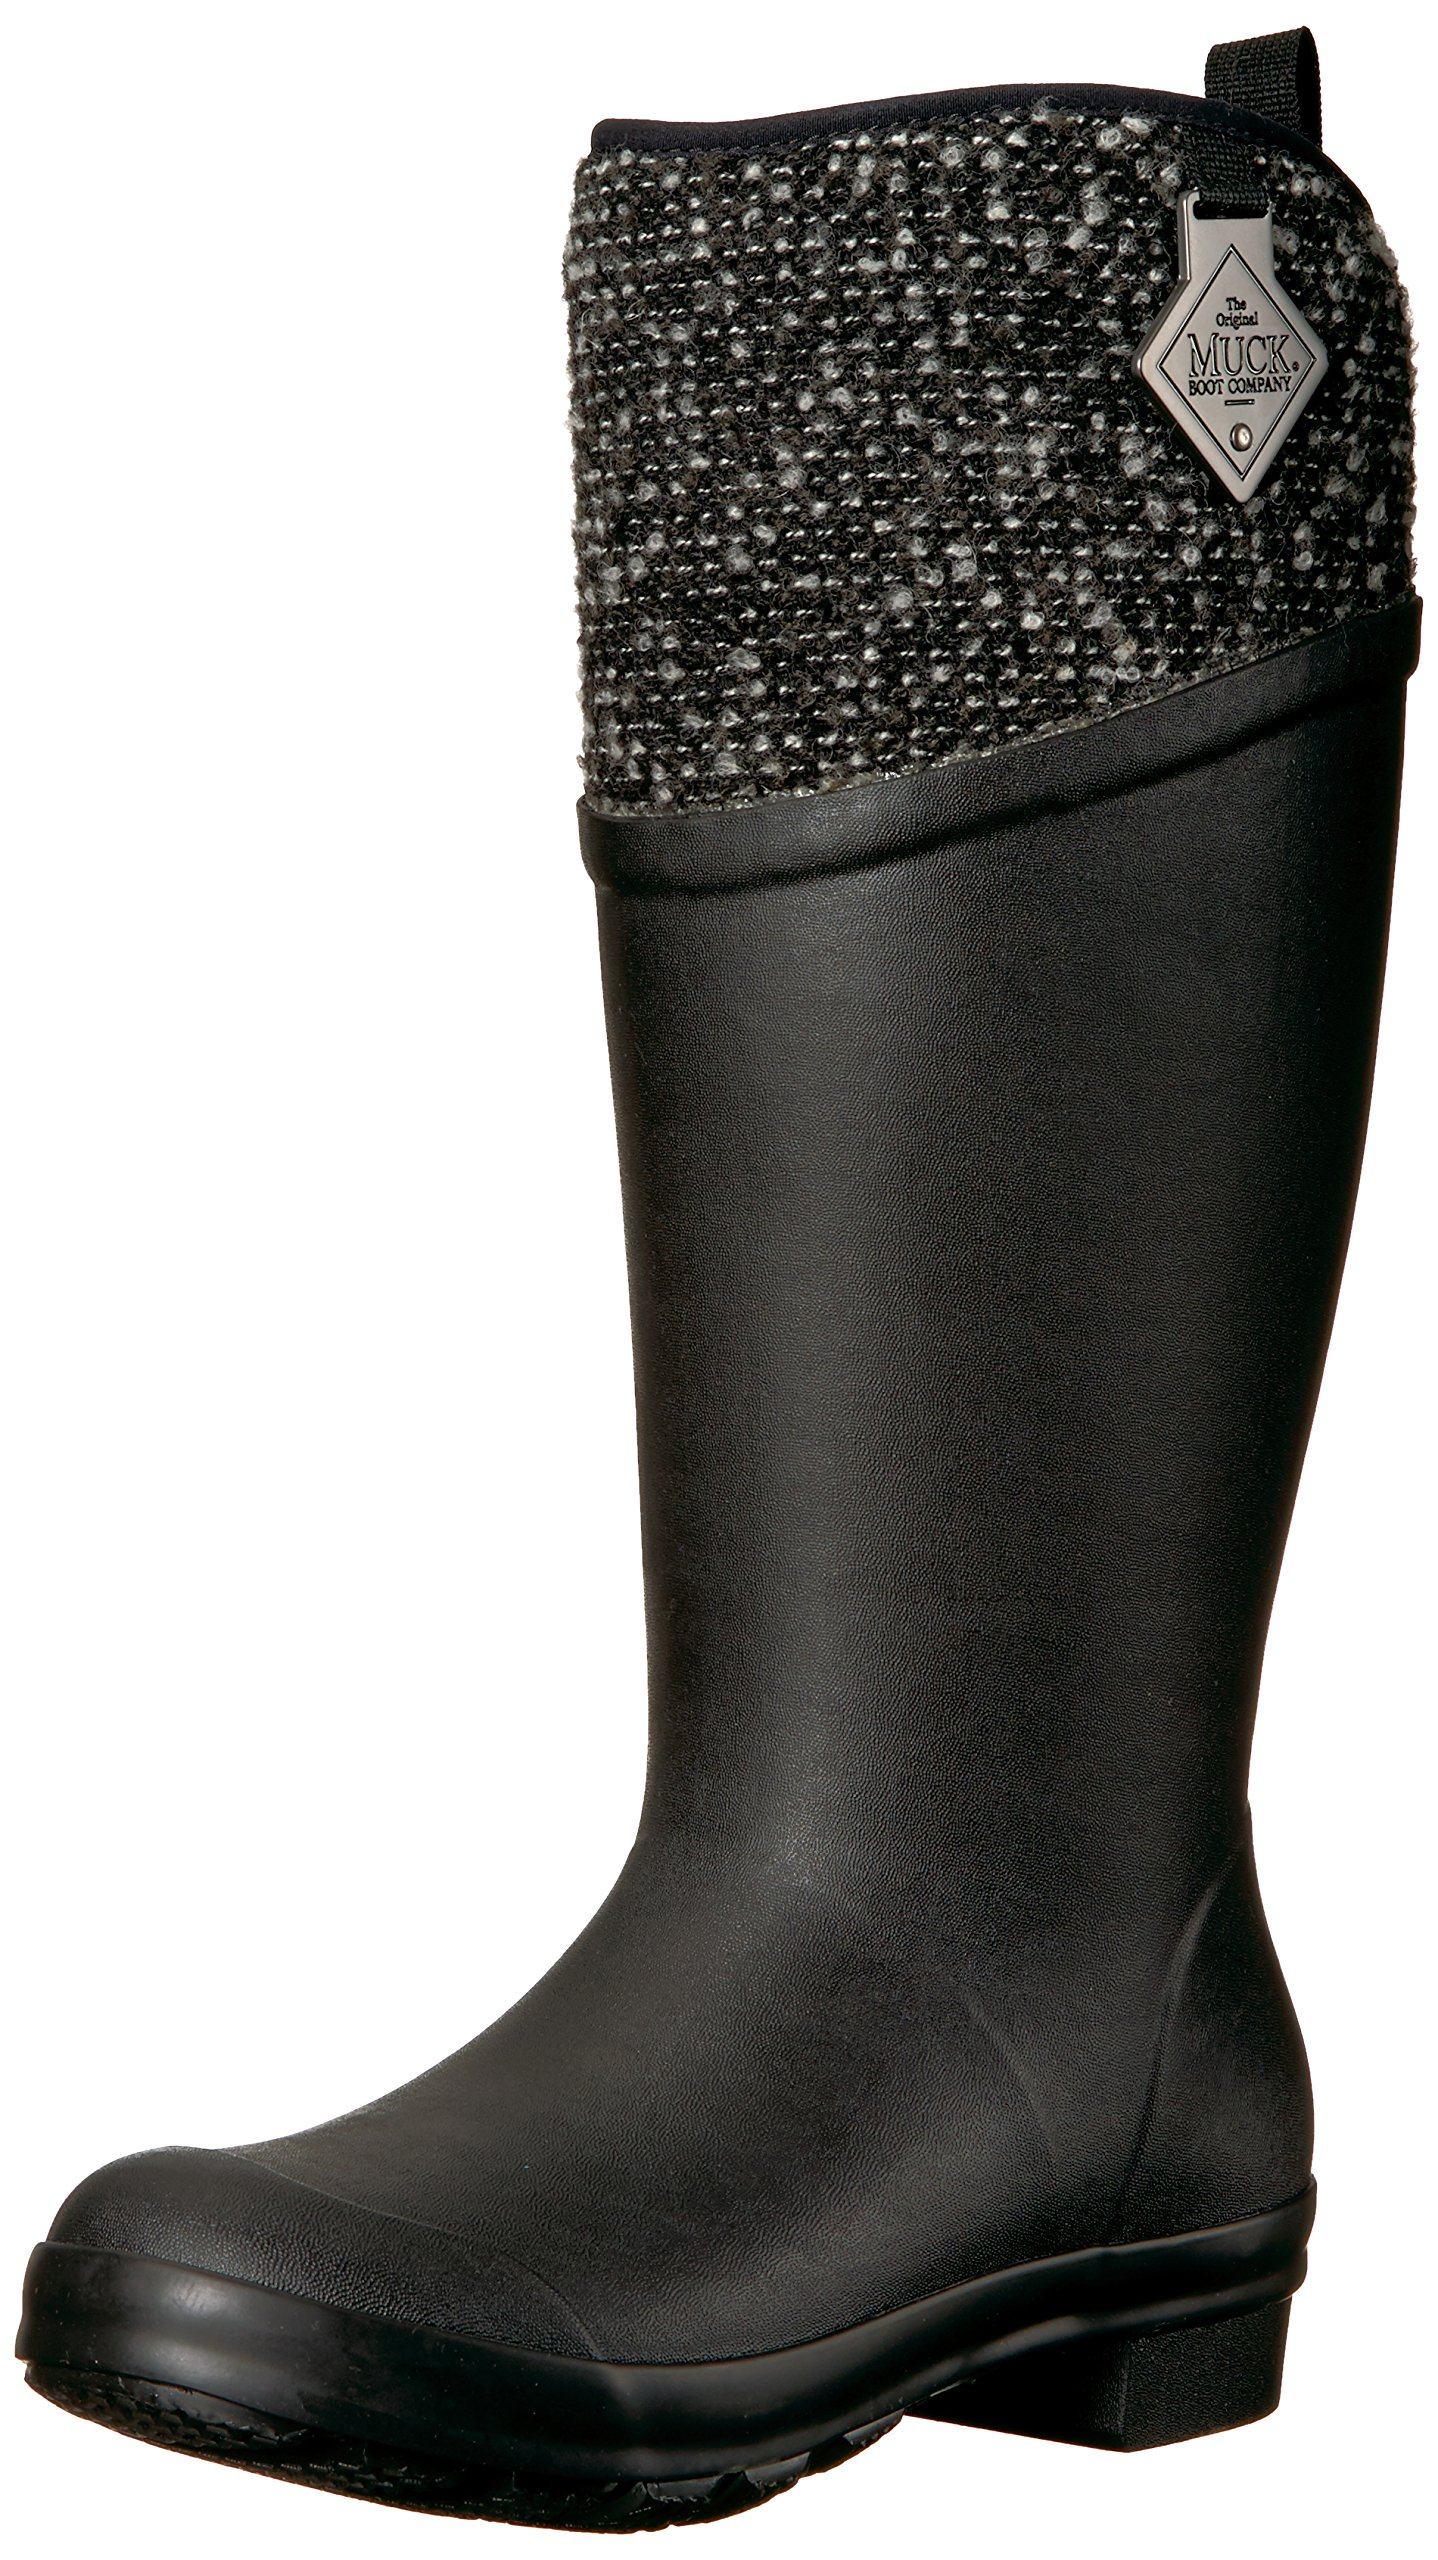 Muck Boot Women's Tremont Supreme Work Boot, Black/Silver, 9 M US